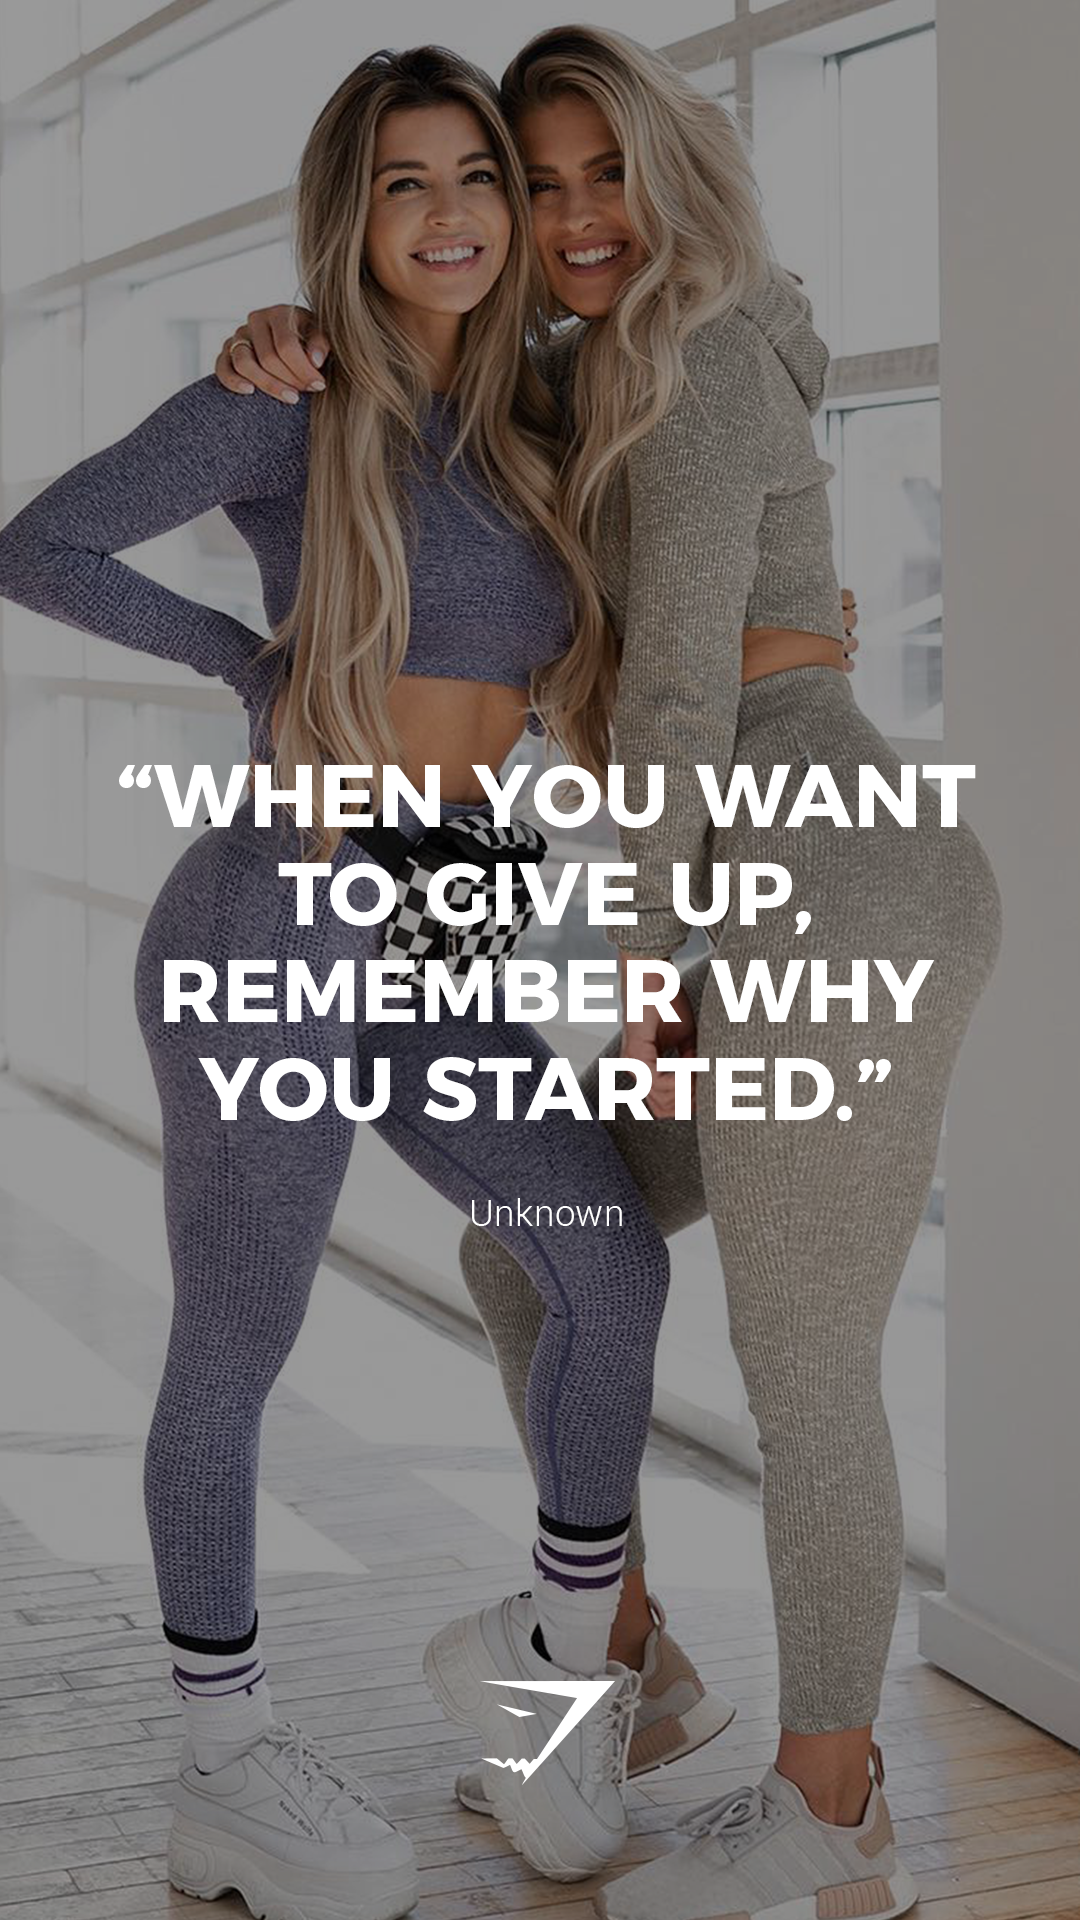 """""""When you want to give up, remember why you started."""" - Unknown. #Gymshark#Quotes#Motivational #Inspiration#Motivate#Phrases #Inspire #Fitness #FitnessQuotes #MotivationalQuotes"""